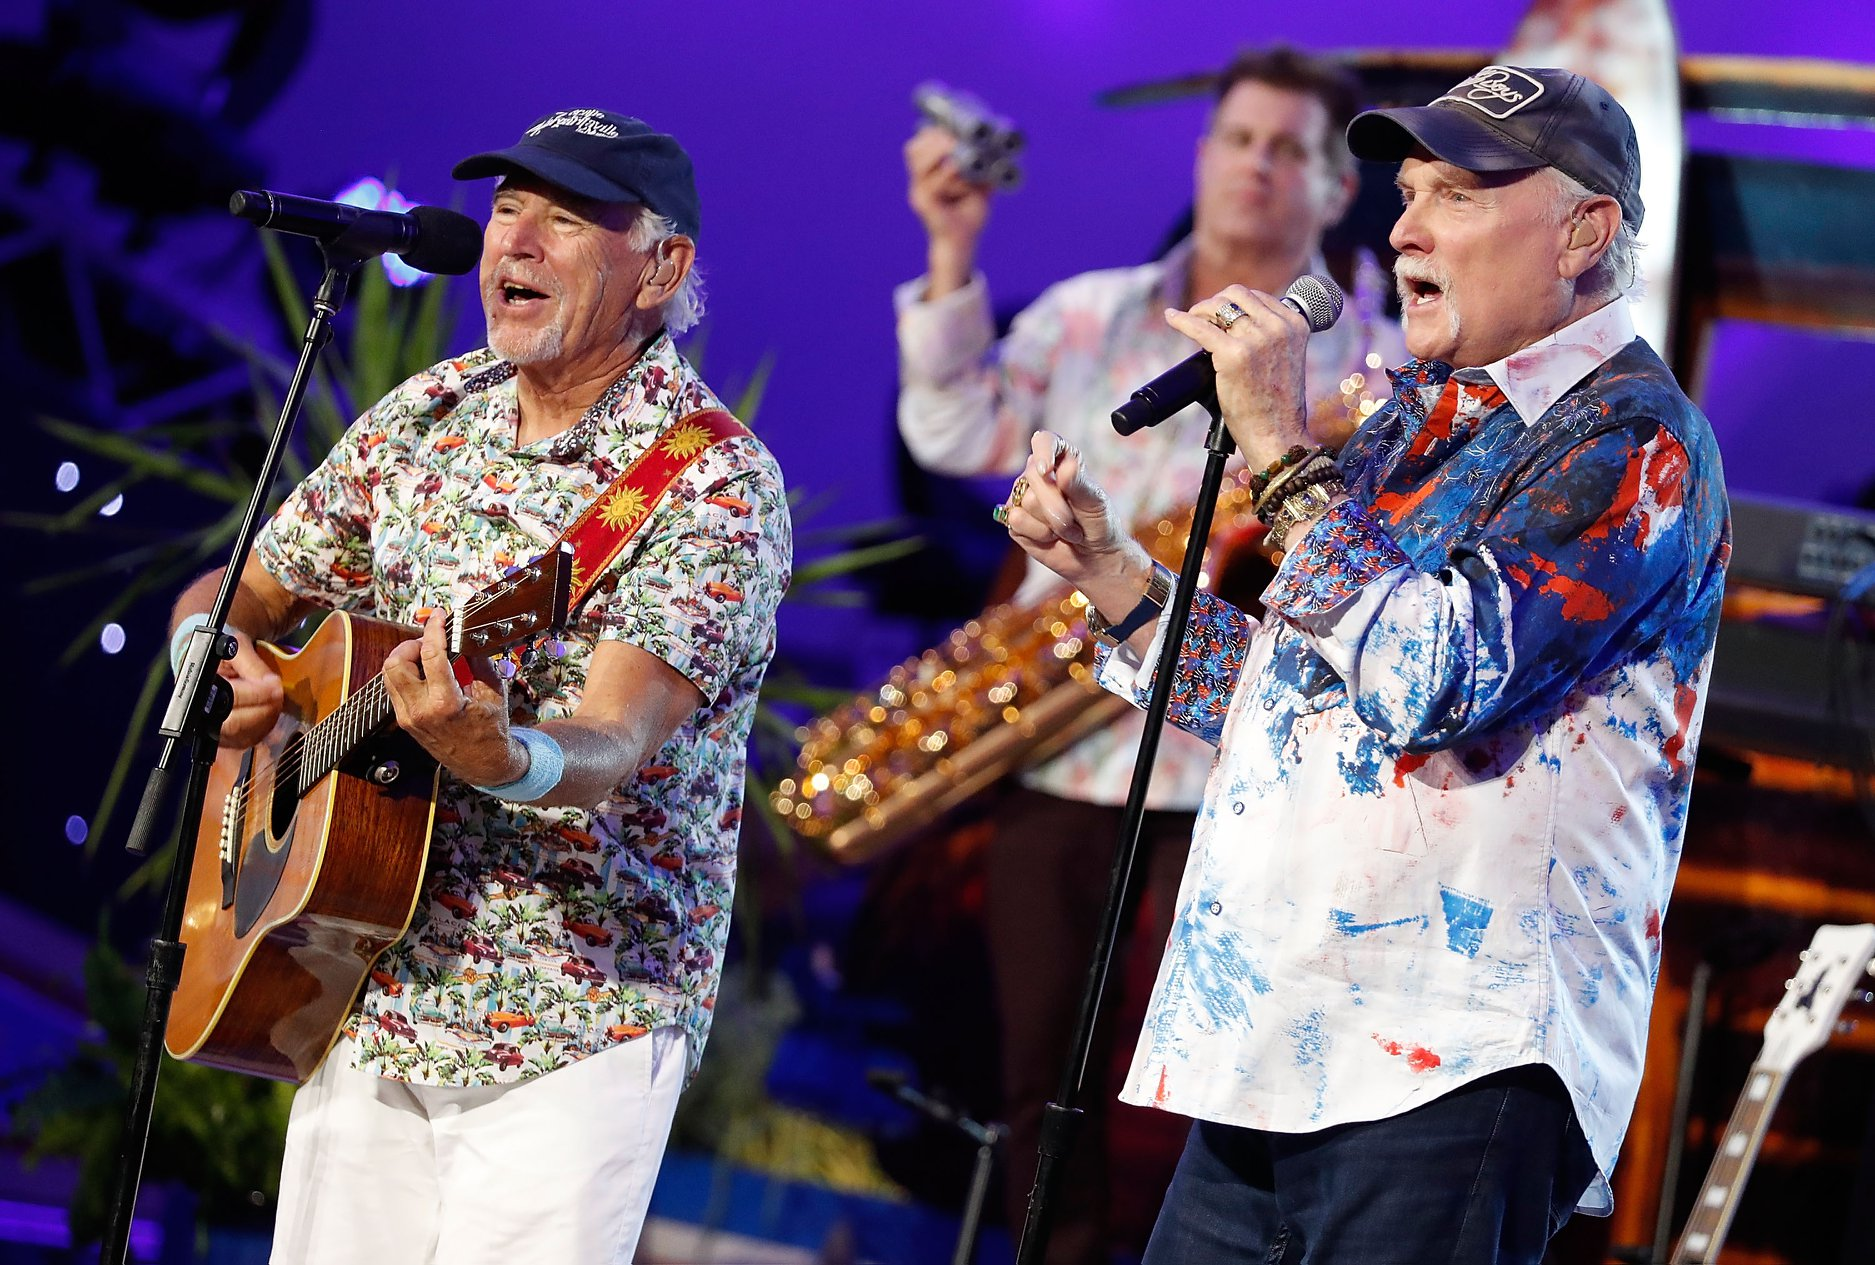 The Beach Boys and Jimmy Buffett team up for an unforgettable performance at the 2019 <em>A Capitol Fourth</em>.